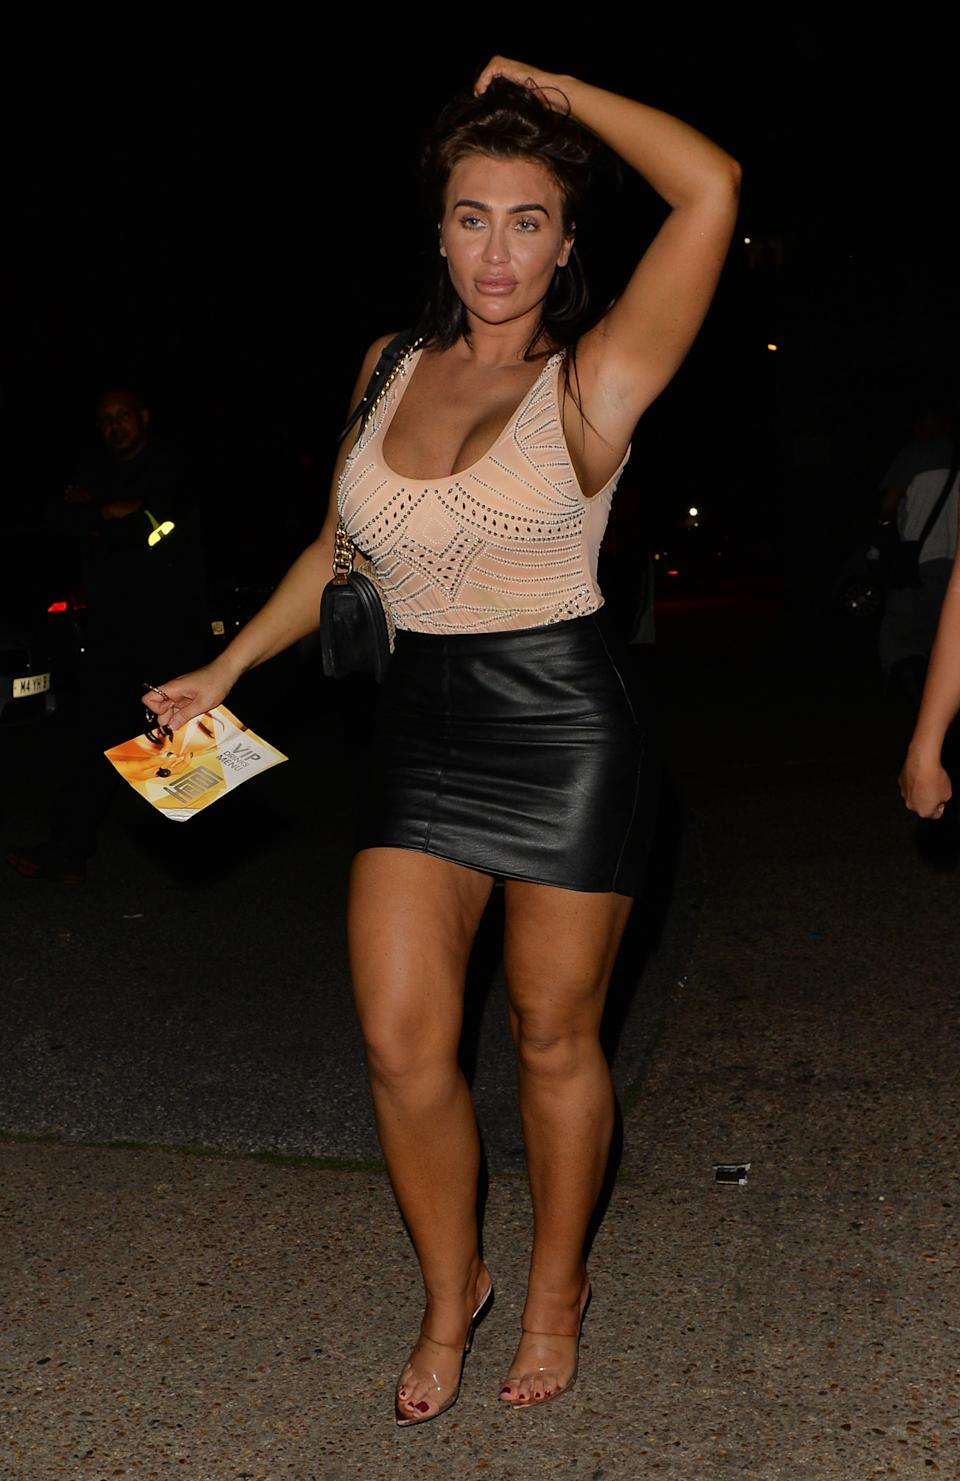 LONDON, UNITED KINGDOM - AUG 04: Lauren Goodger seen leaving faces night club with her sisters on August 04, 2018 in London, England.  PHOTOGRAPH BY Eagle Lee / Barcroft Images (Photo credit should read PALACE LEE / Barcroft Media via Getty Images)